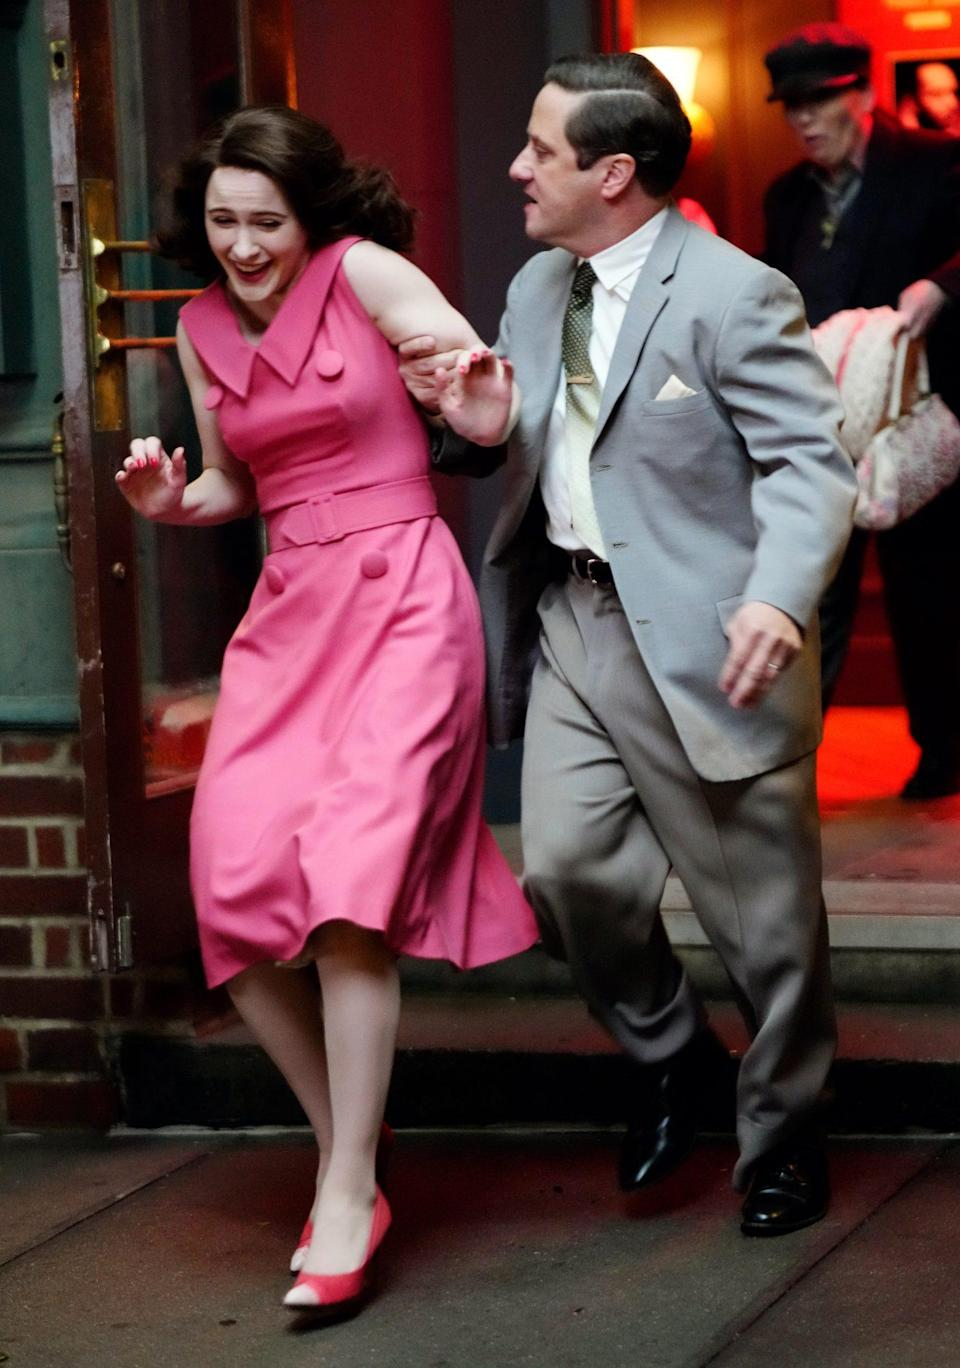 <p>On April 23, the actress filmed a scene where she's removed from a club. Looks like there are some more classic Midge Maisel antics in season 4. </p>